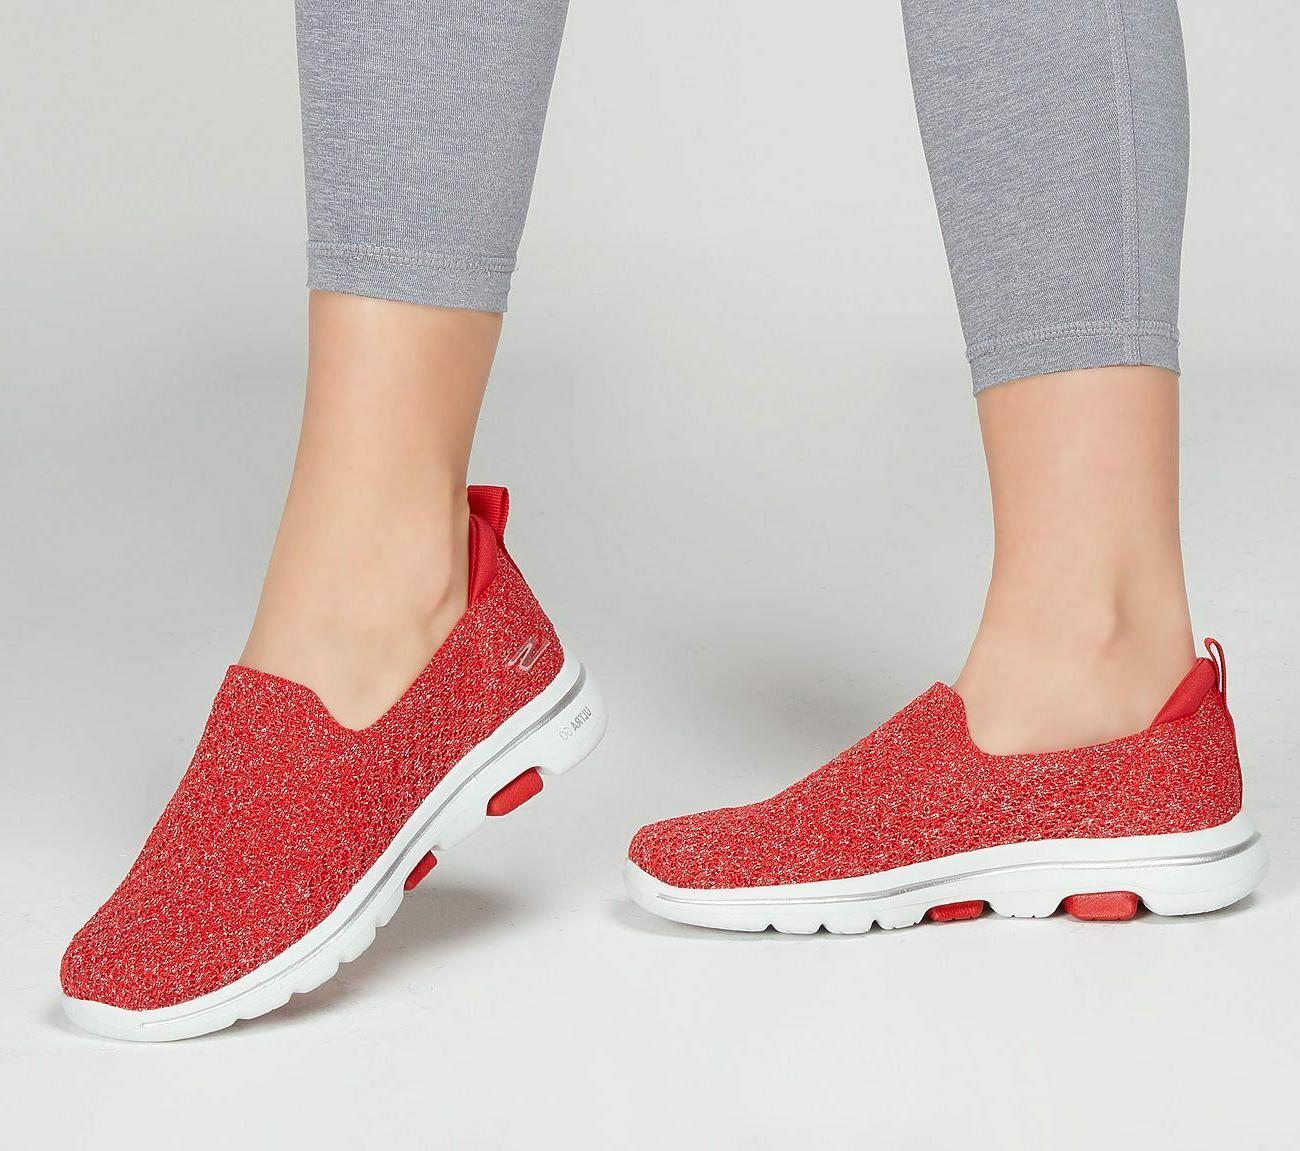 shoes red go walk 5 women casual